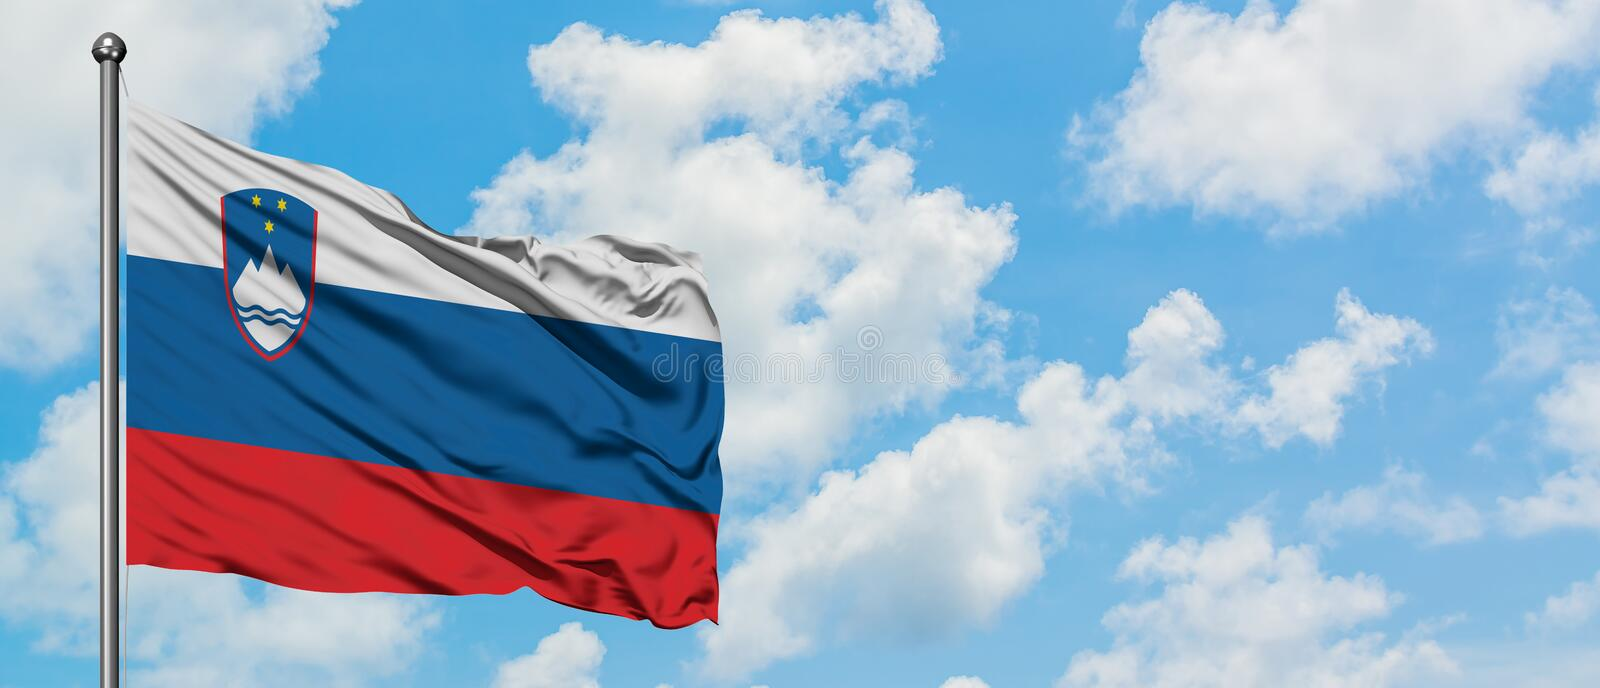 Slovenia flag waving in the wind against white cloudy blue sky. Diplomacy concept, international relations.  royalty free stock photo